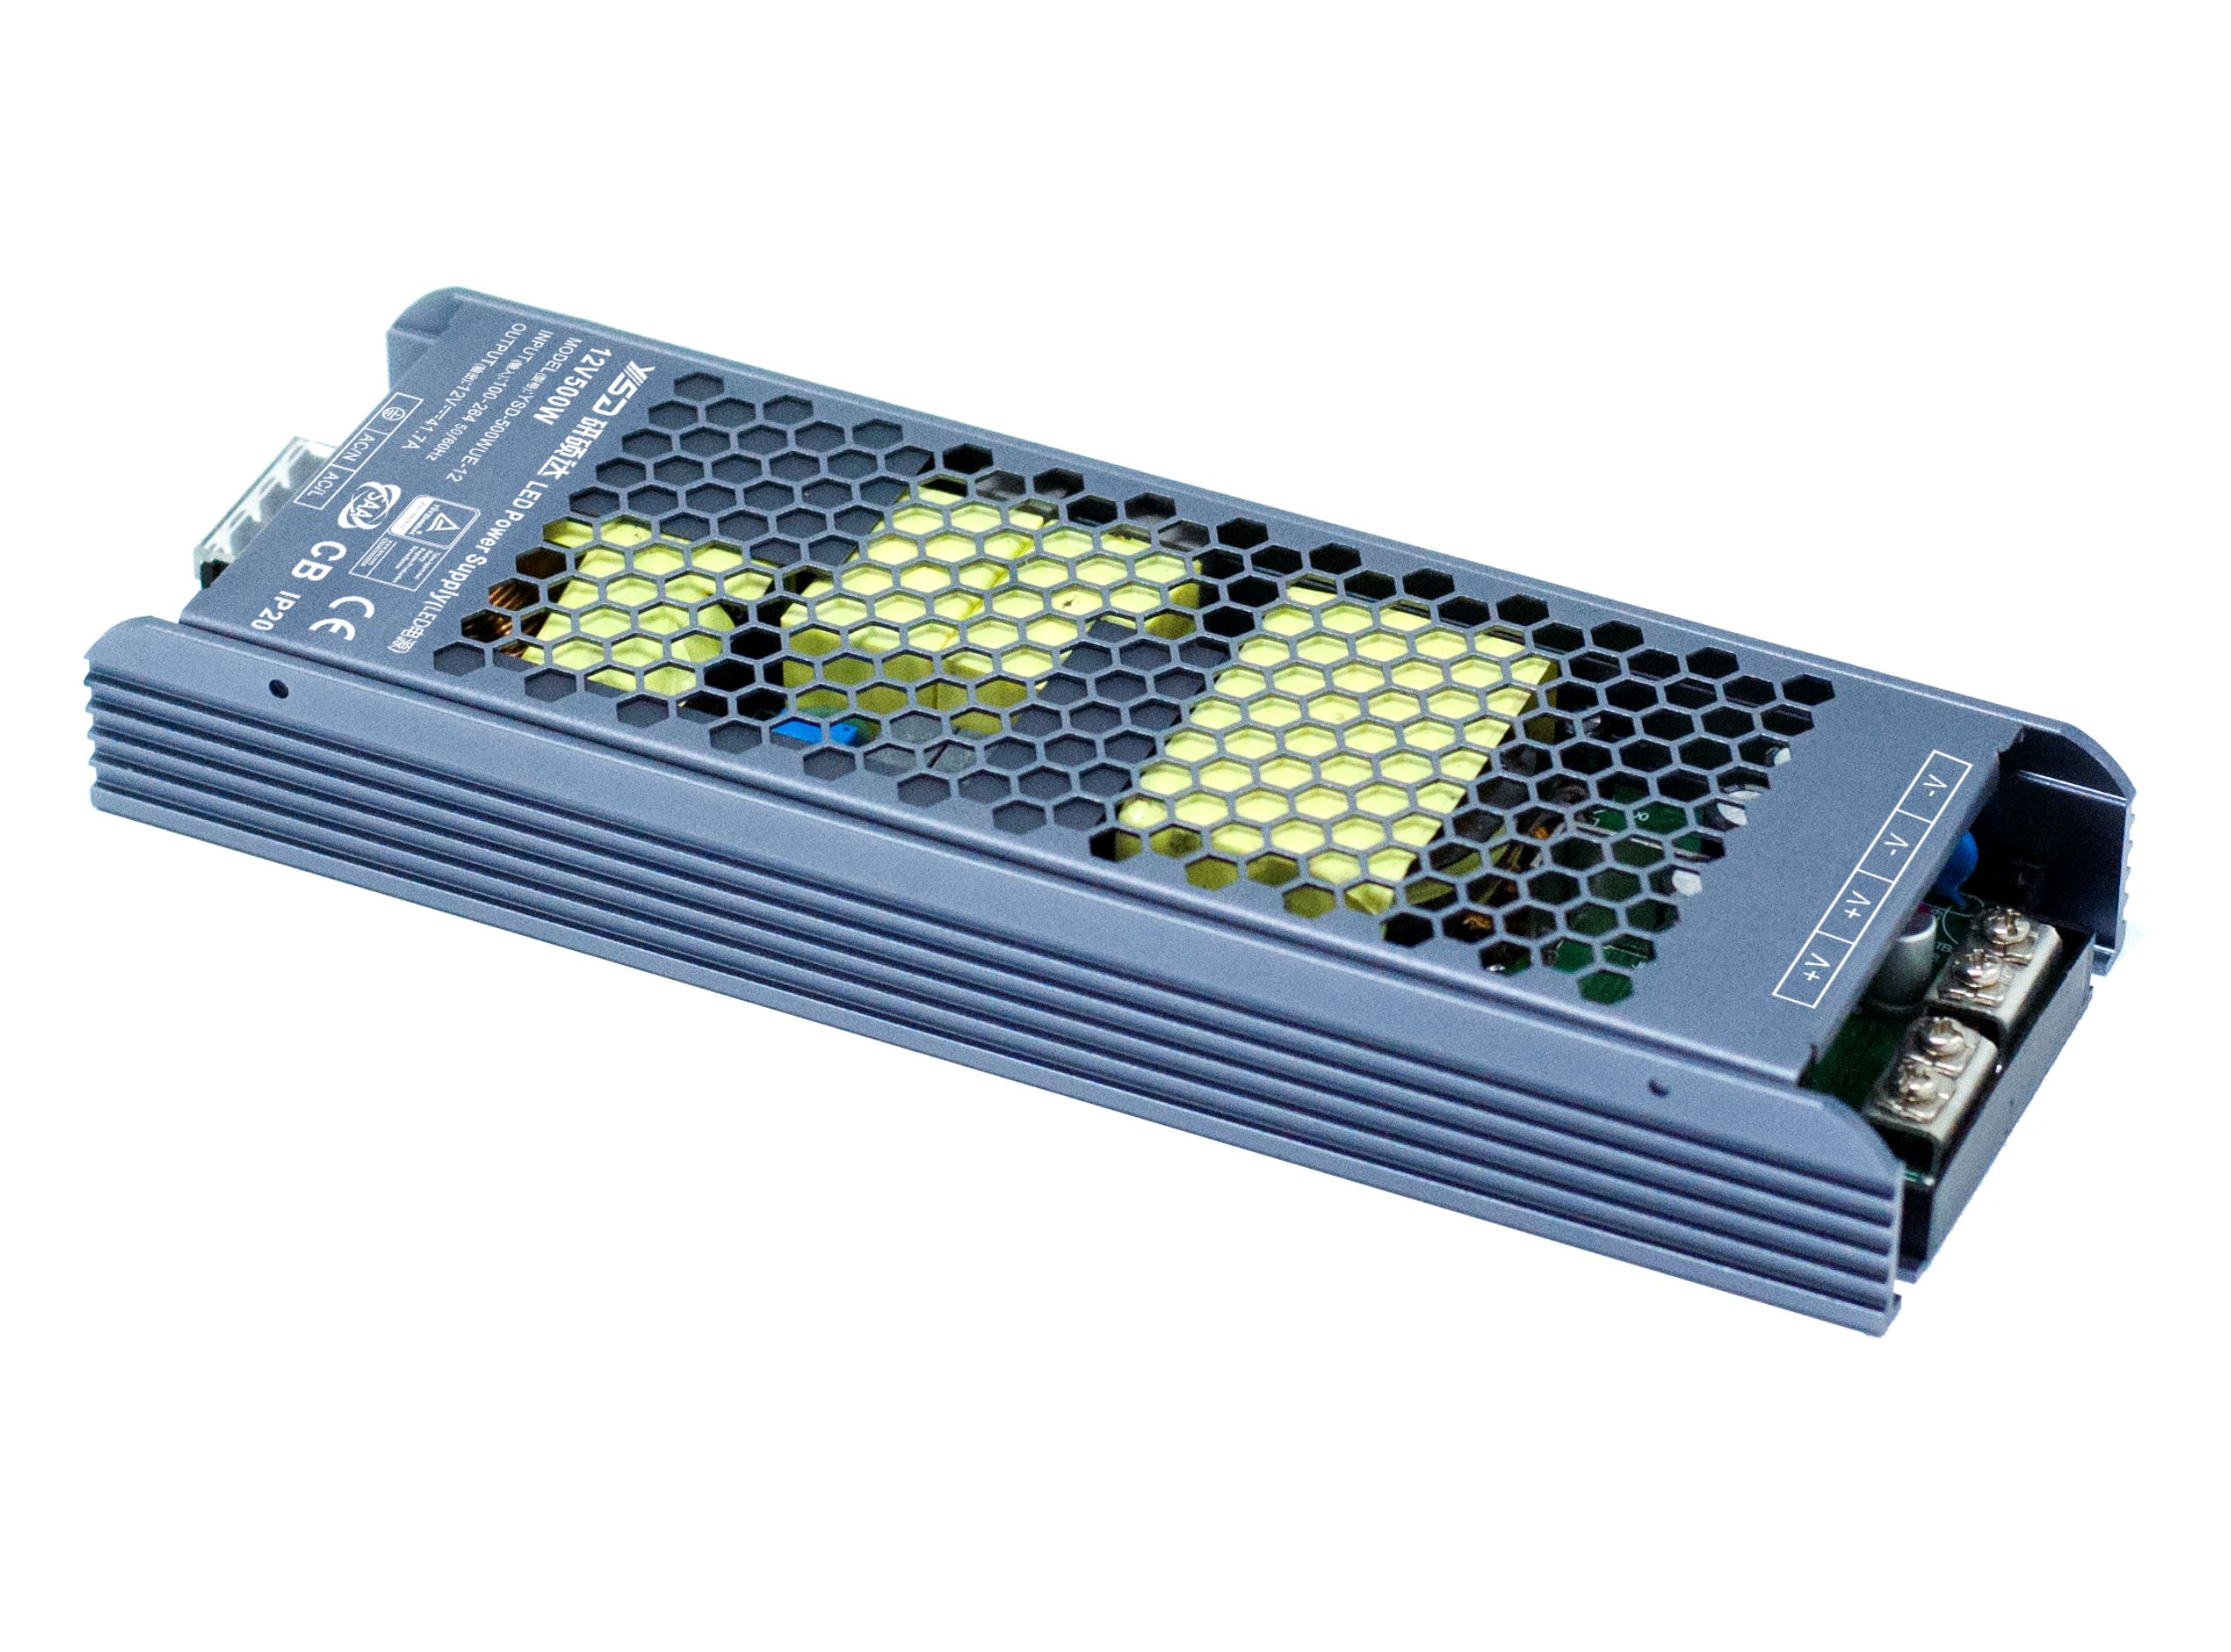 E-series-Semi-Filled-Glue-LED-Switch-power-supply